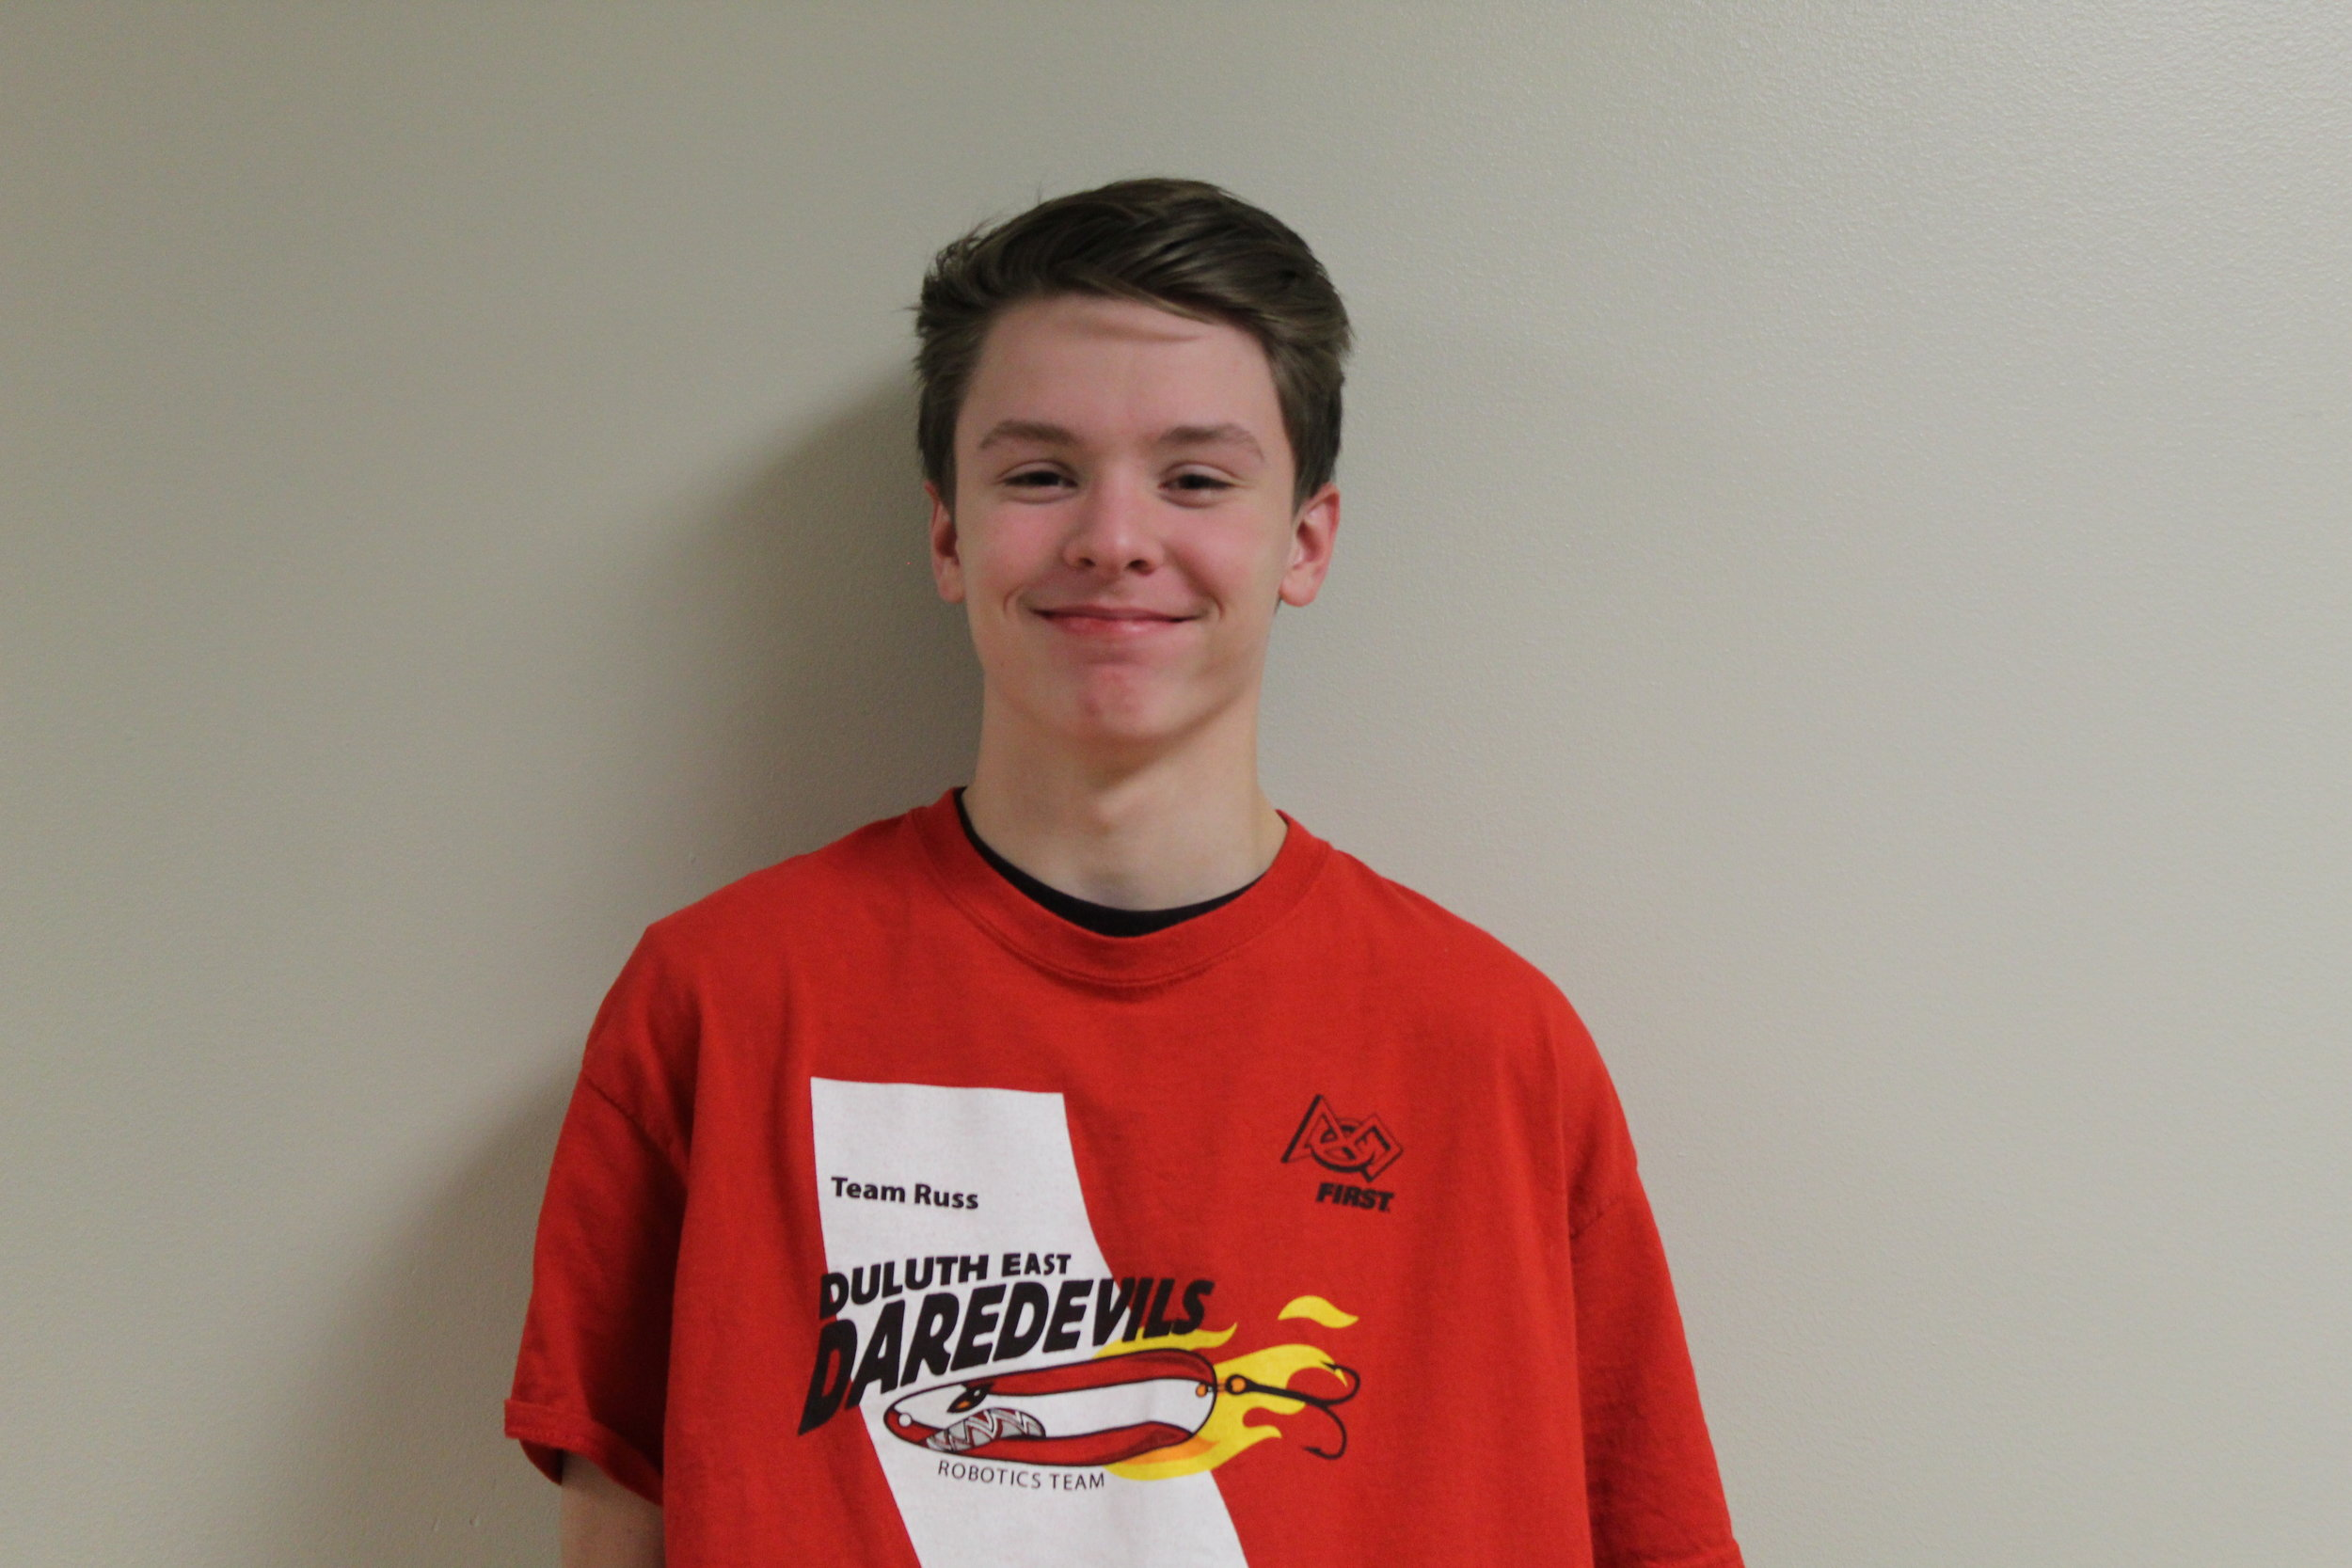 Graham s. - Graham is a freshman at Duluth East High School, and this is his first year on the team. He joined the team because he wanted to gain more experiences that he could use in later points of his life. In his free time, he enjoys to